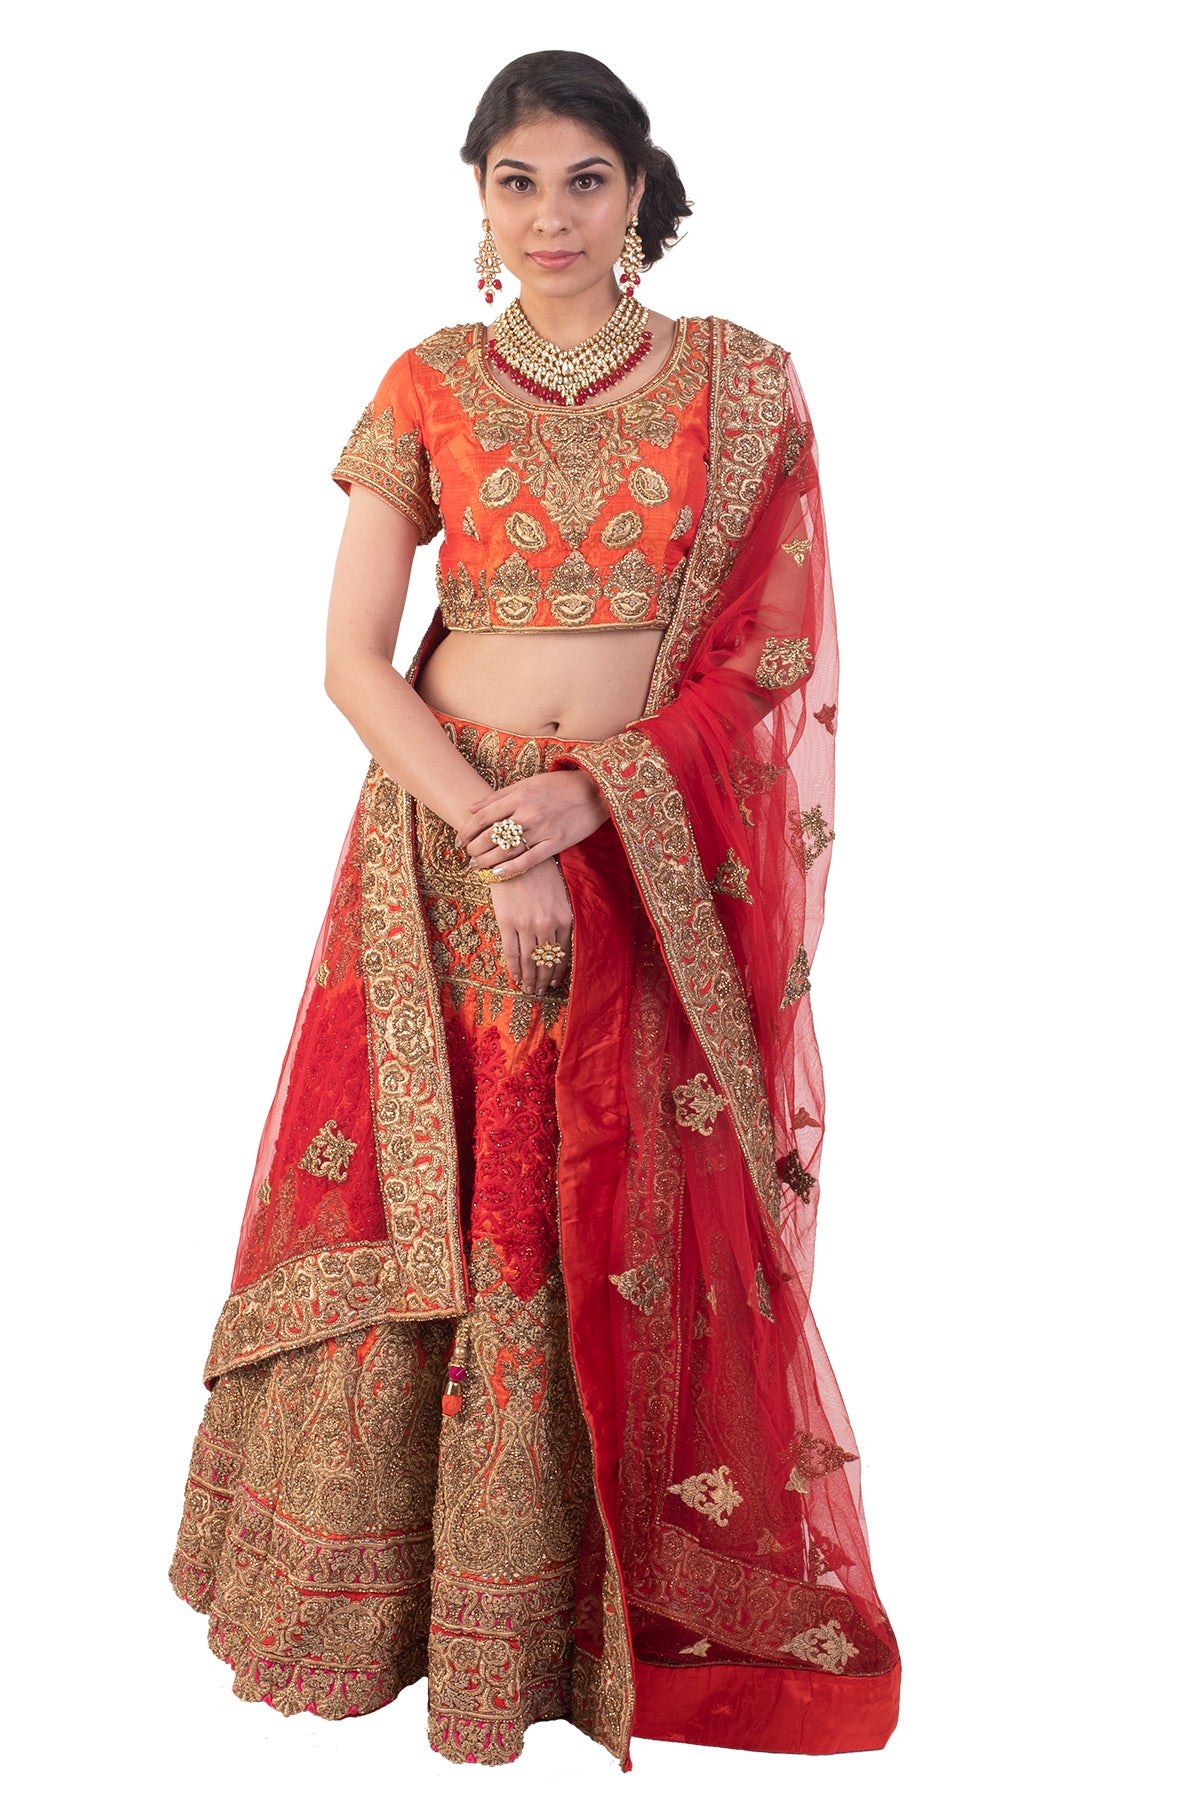 Classical and dazzling is this orange lehenga in traditional zardosi work sprinkled with embellishment and stonework. What more could one ask for!